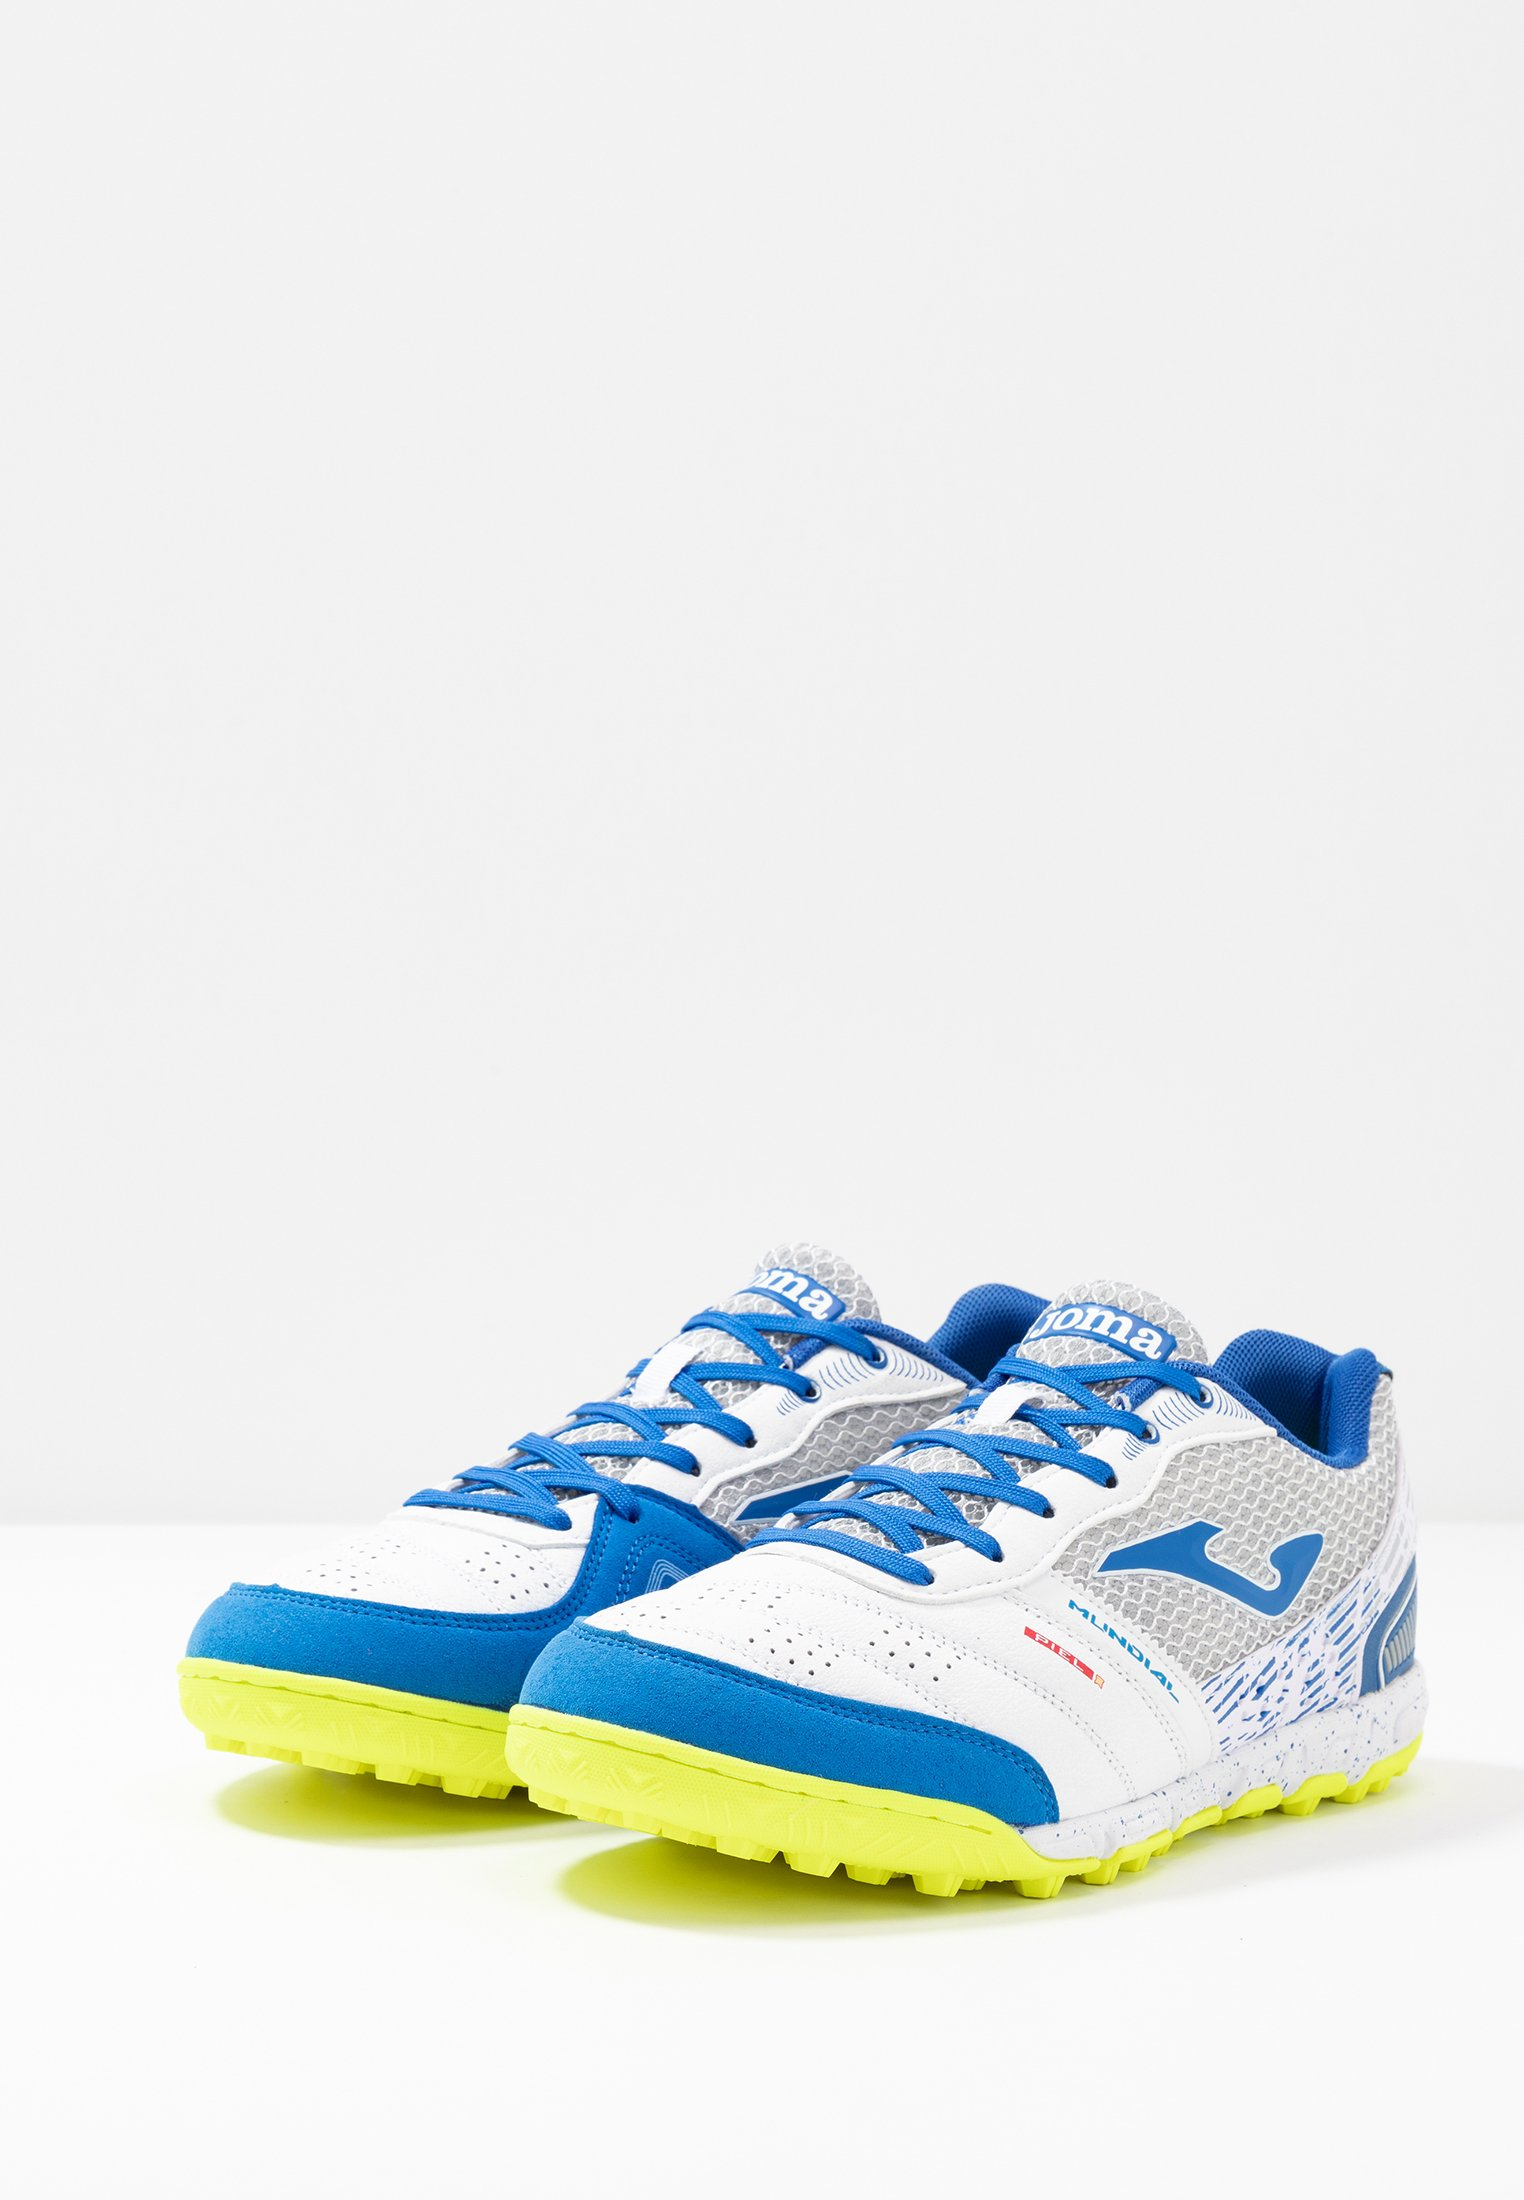 Joma MUNDIAL Fotballsko for kunstgress weiss Zalando.no